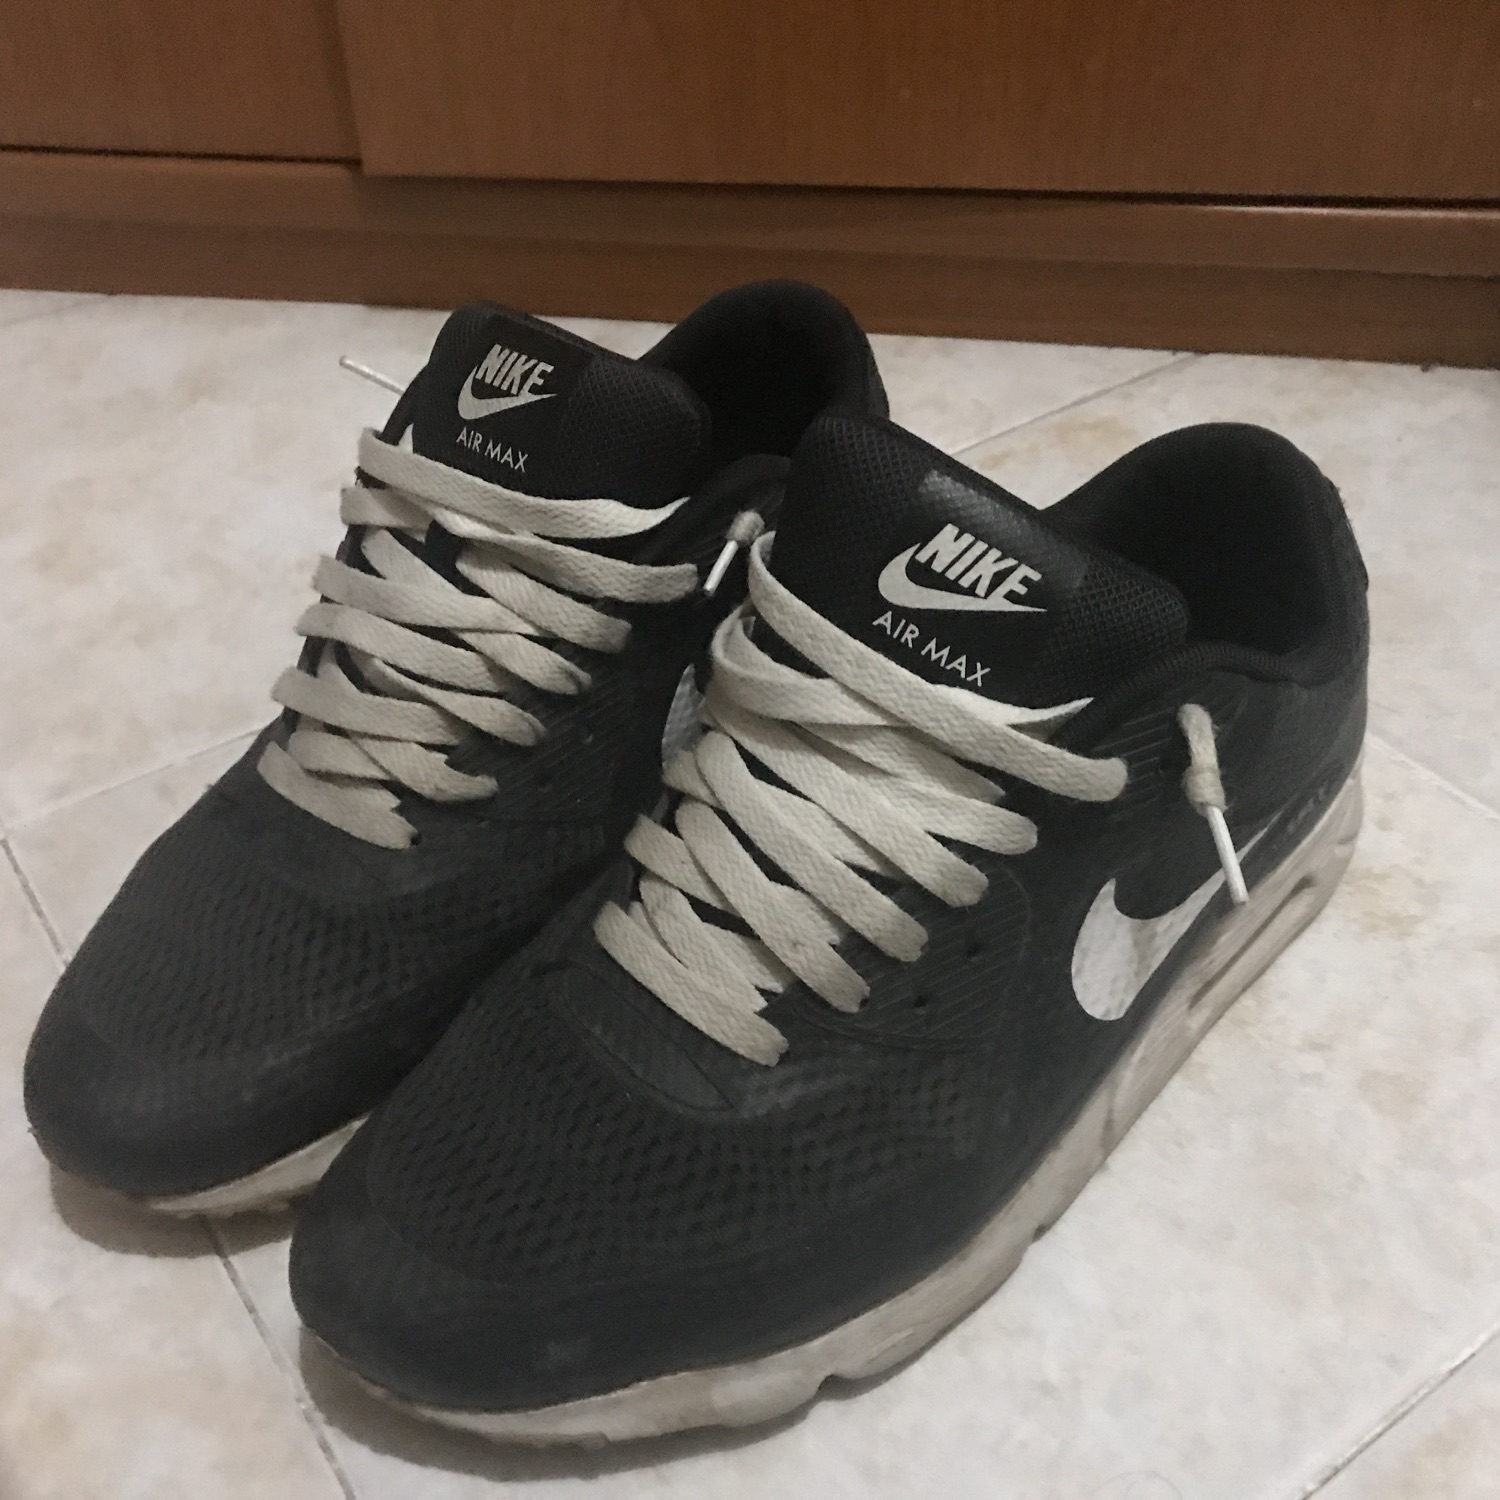 2air max 90 nere